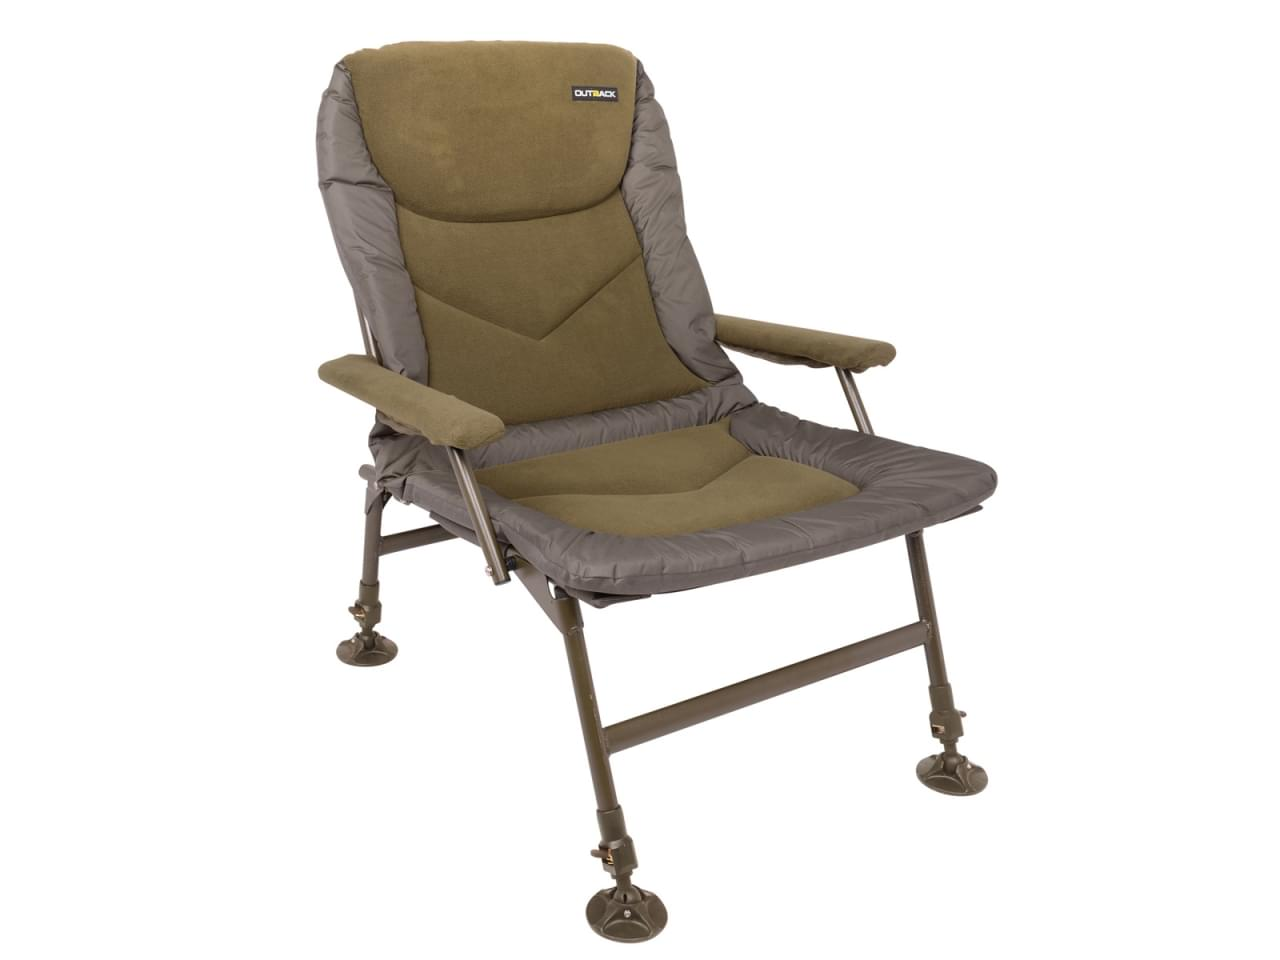 Strategy Outback Relax Chair met Armleuningen